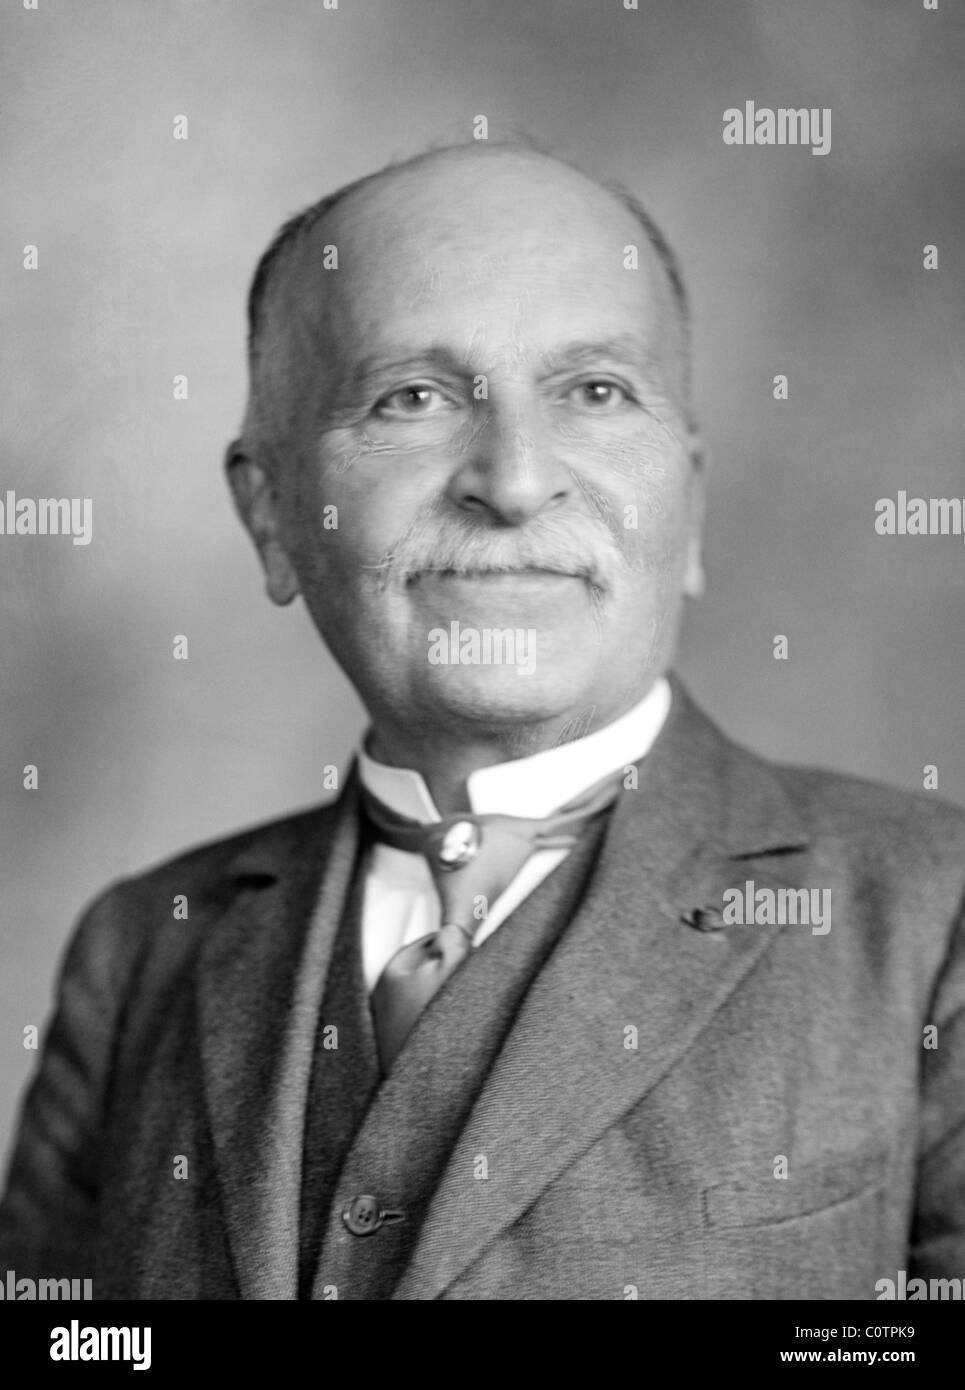 Vintage portrait photo c1910s of French chemist Paul Sabatier (1854 - 1941) - co-winner of the Nobel Prize in Chemistry - Stock Image